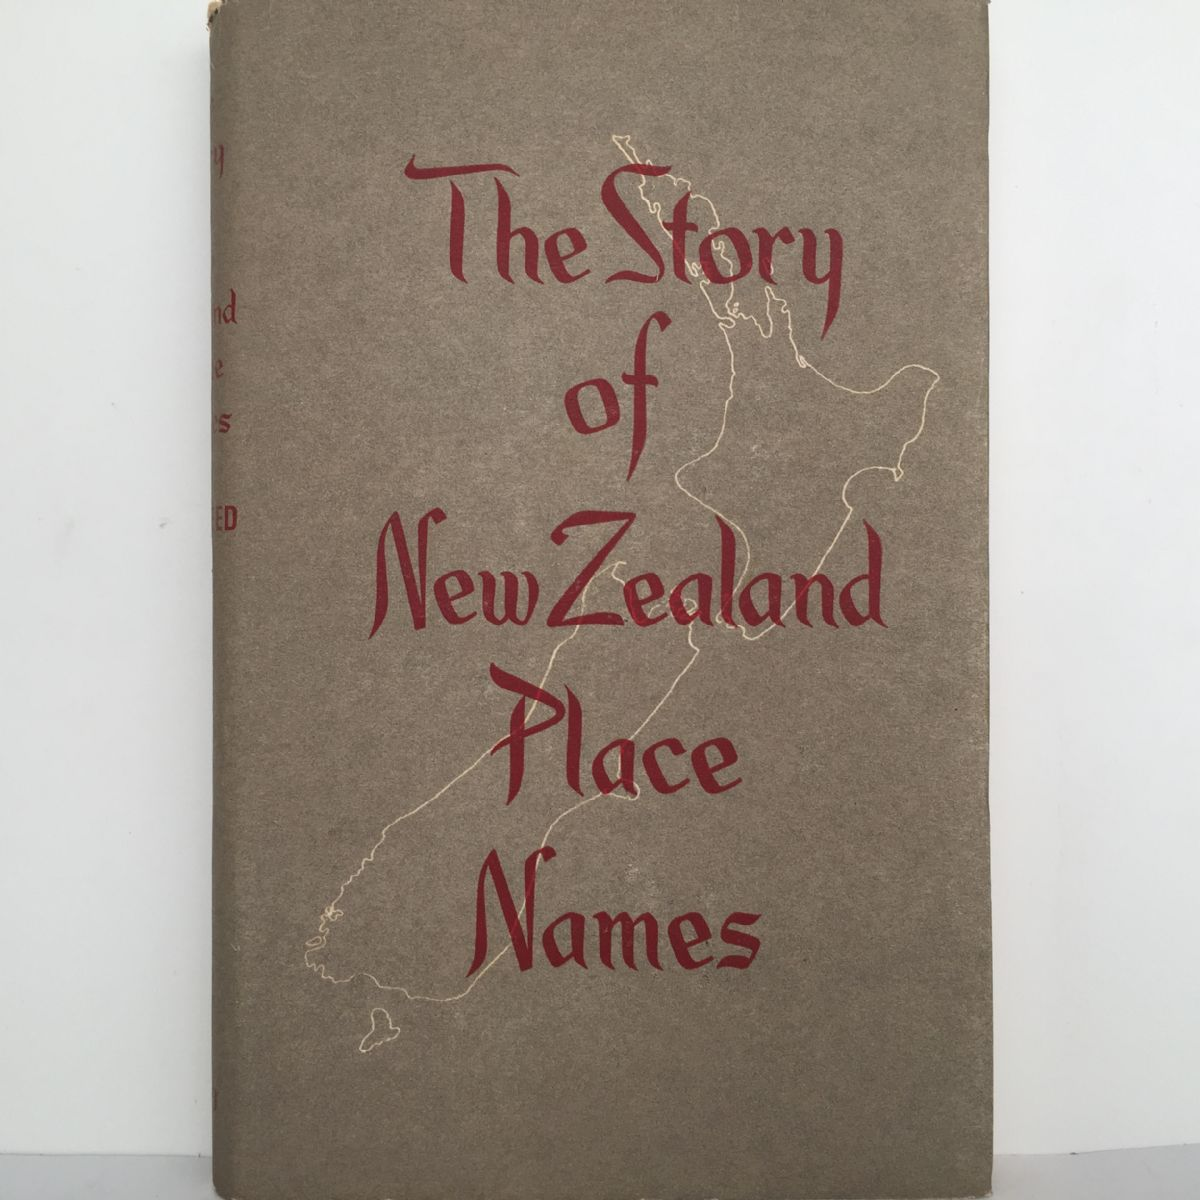 The Story of New Zealand Place Names